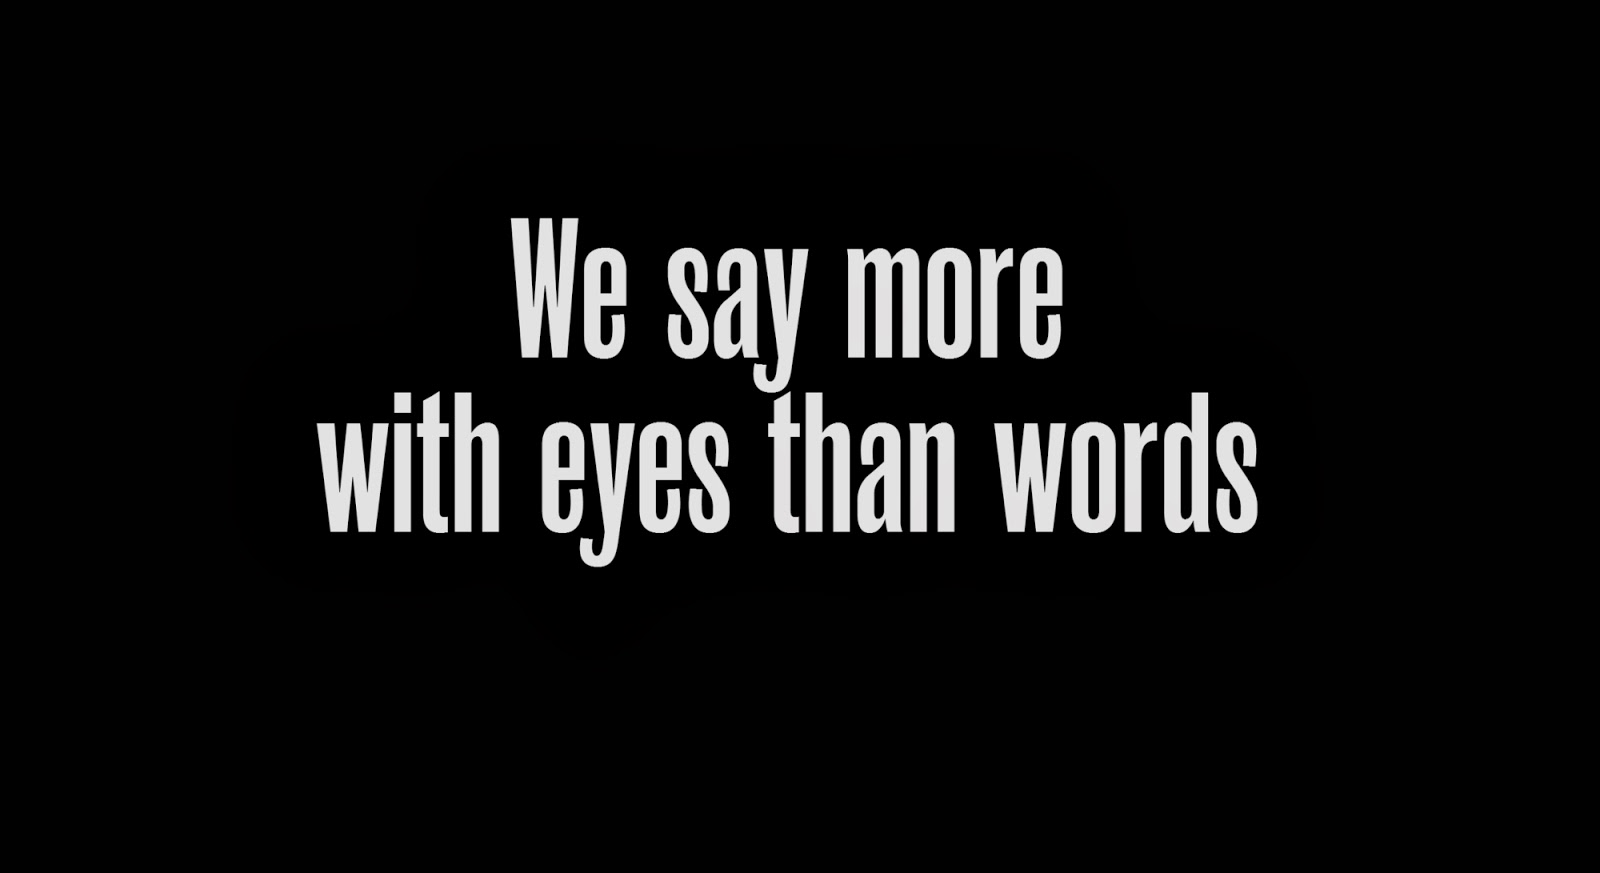 We say more with eyes than words